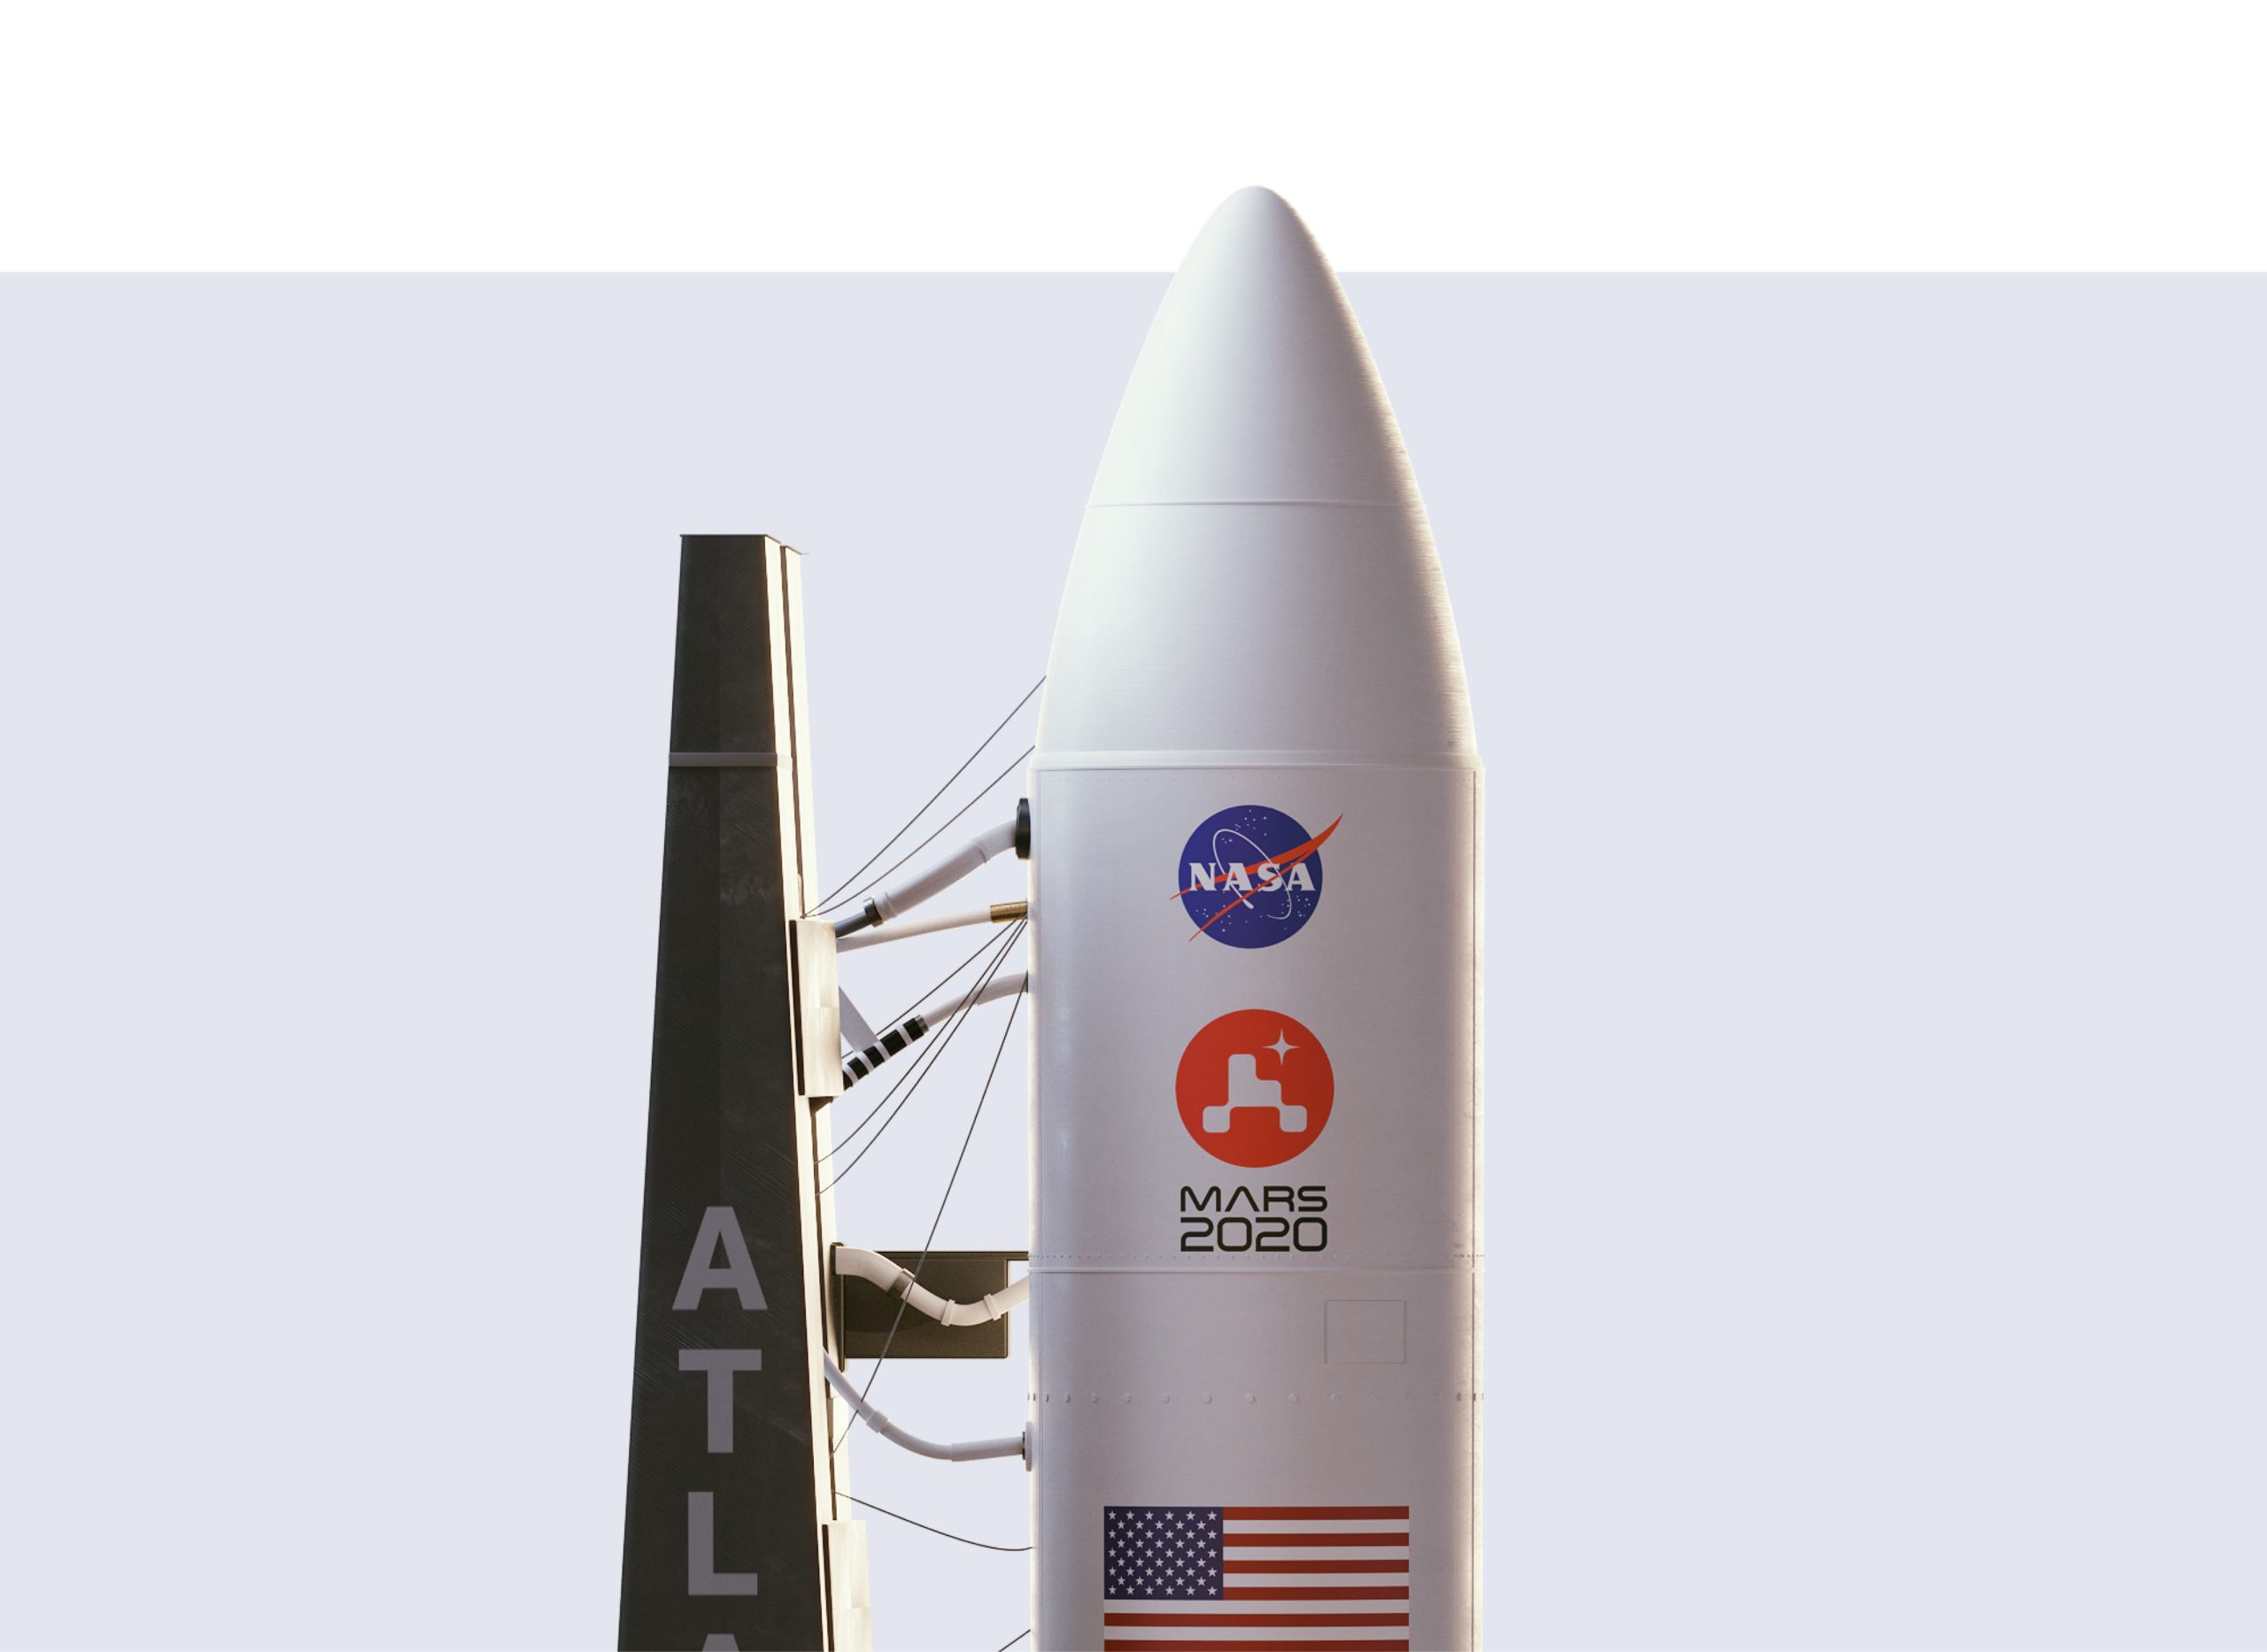 Mars 2020 Logo and Rocket by House of van Schneider